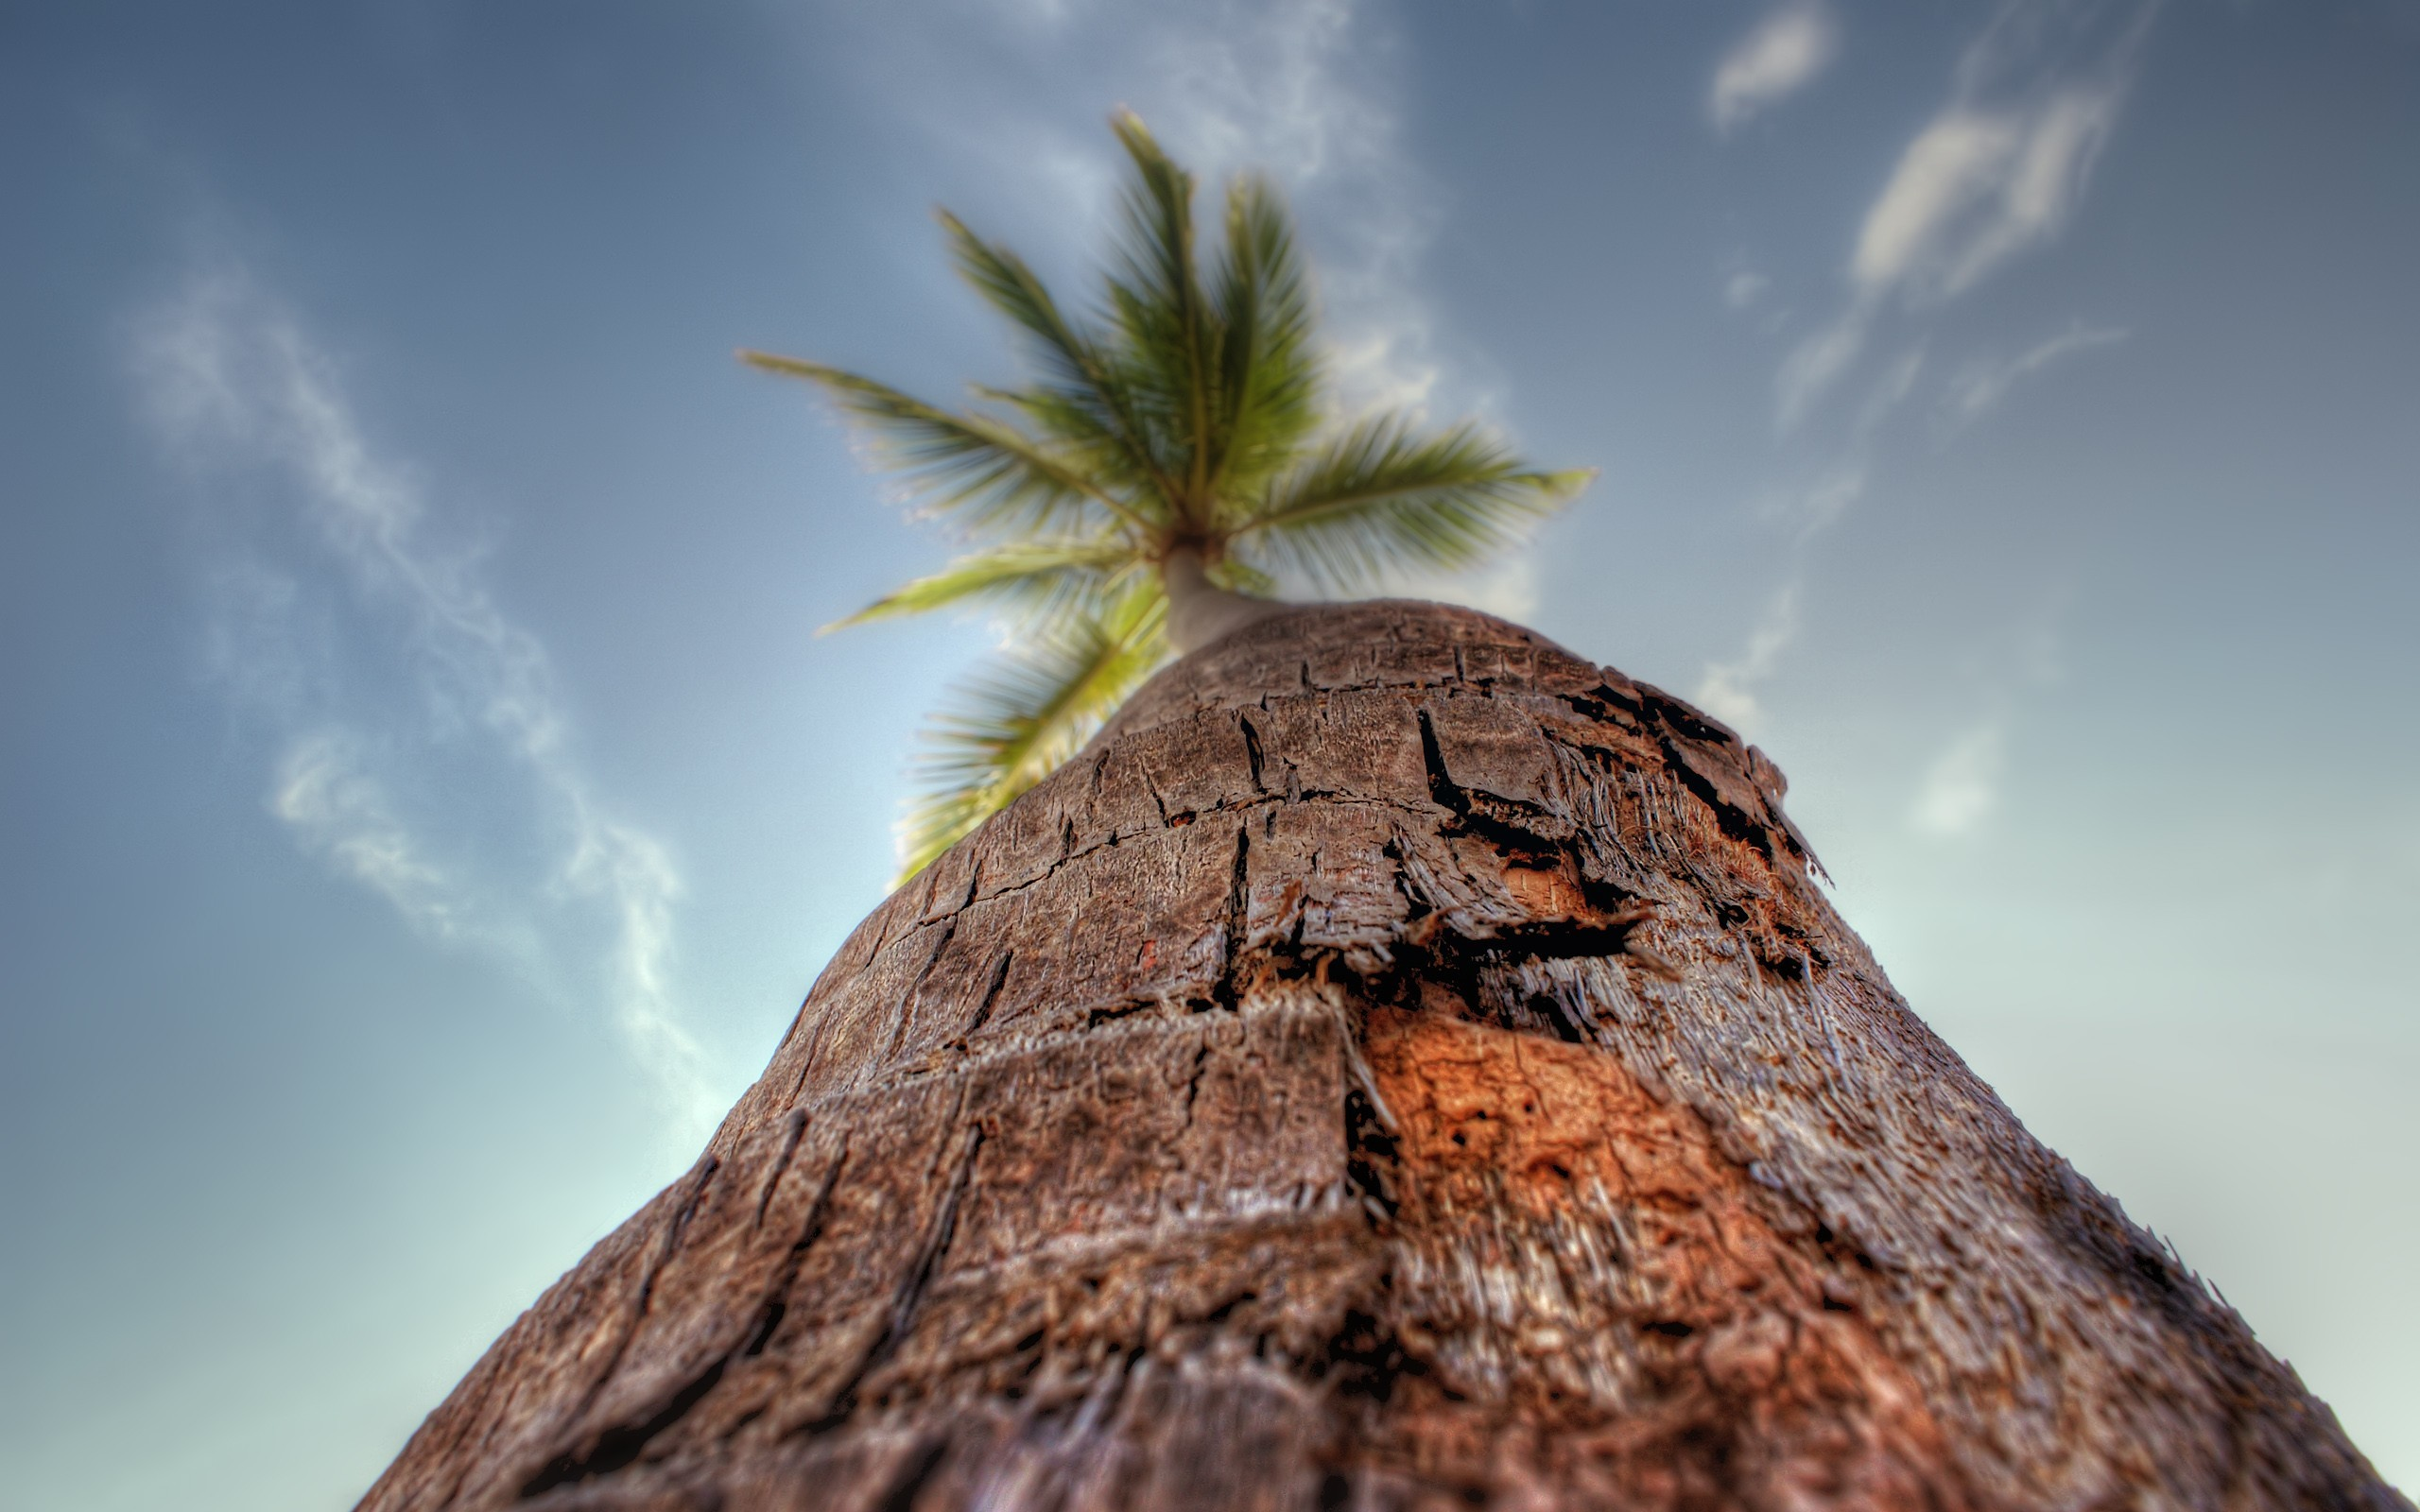 Exotic Cars Wallpaper 1920x1080 Tree Looking Up Wallpapers Tree Looking Up Stock Photos